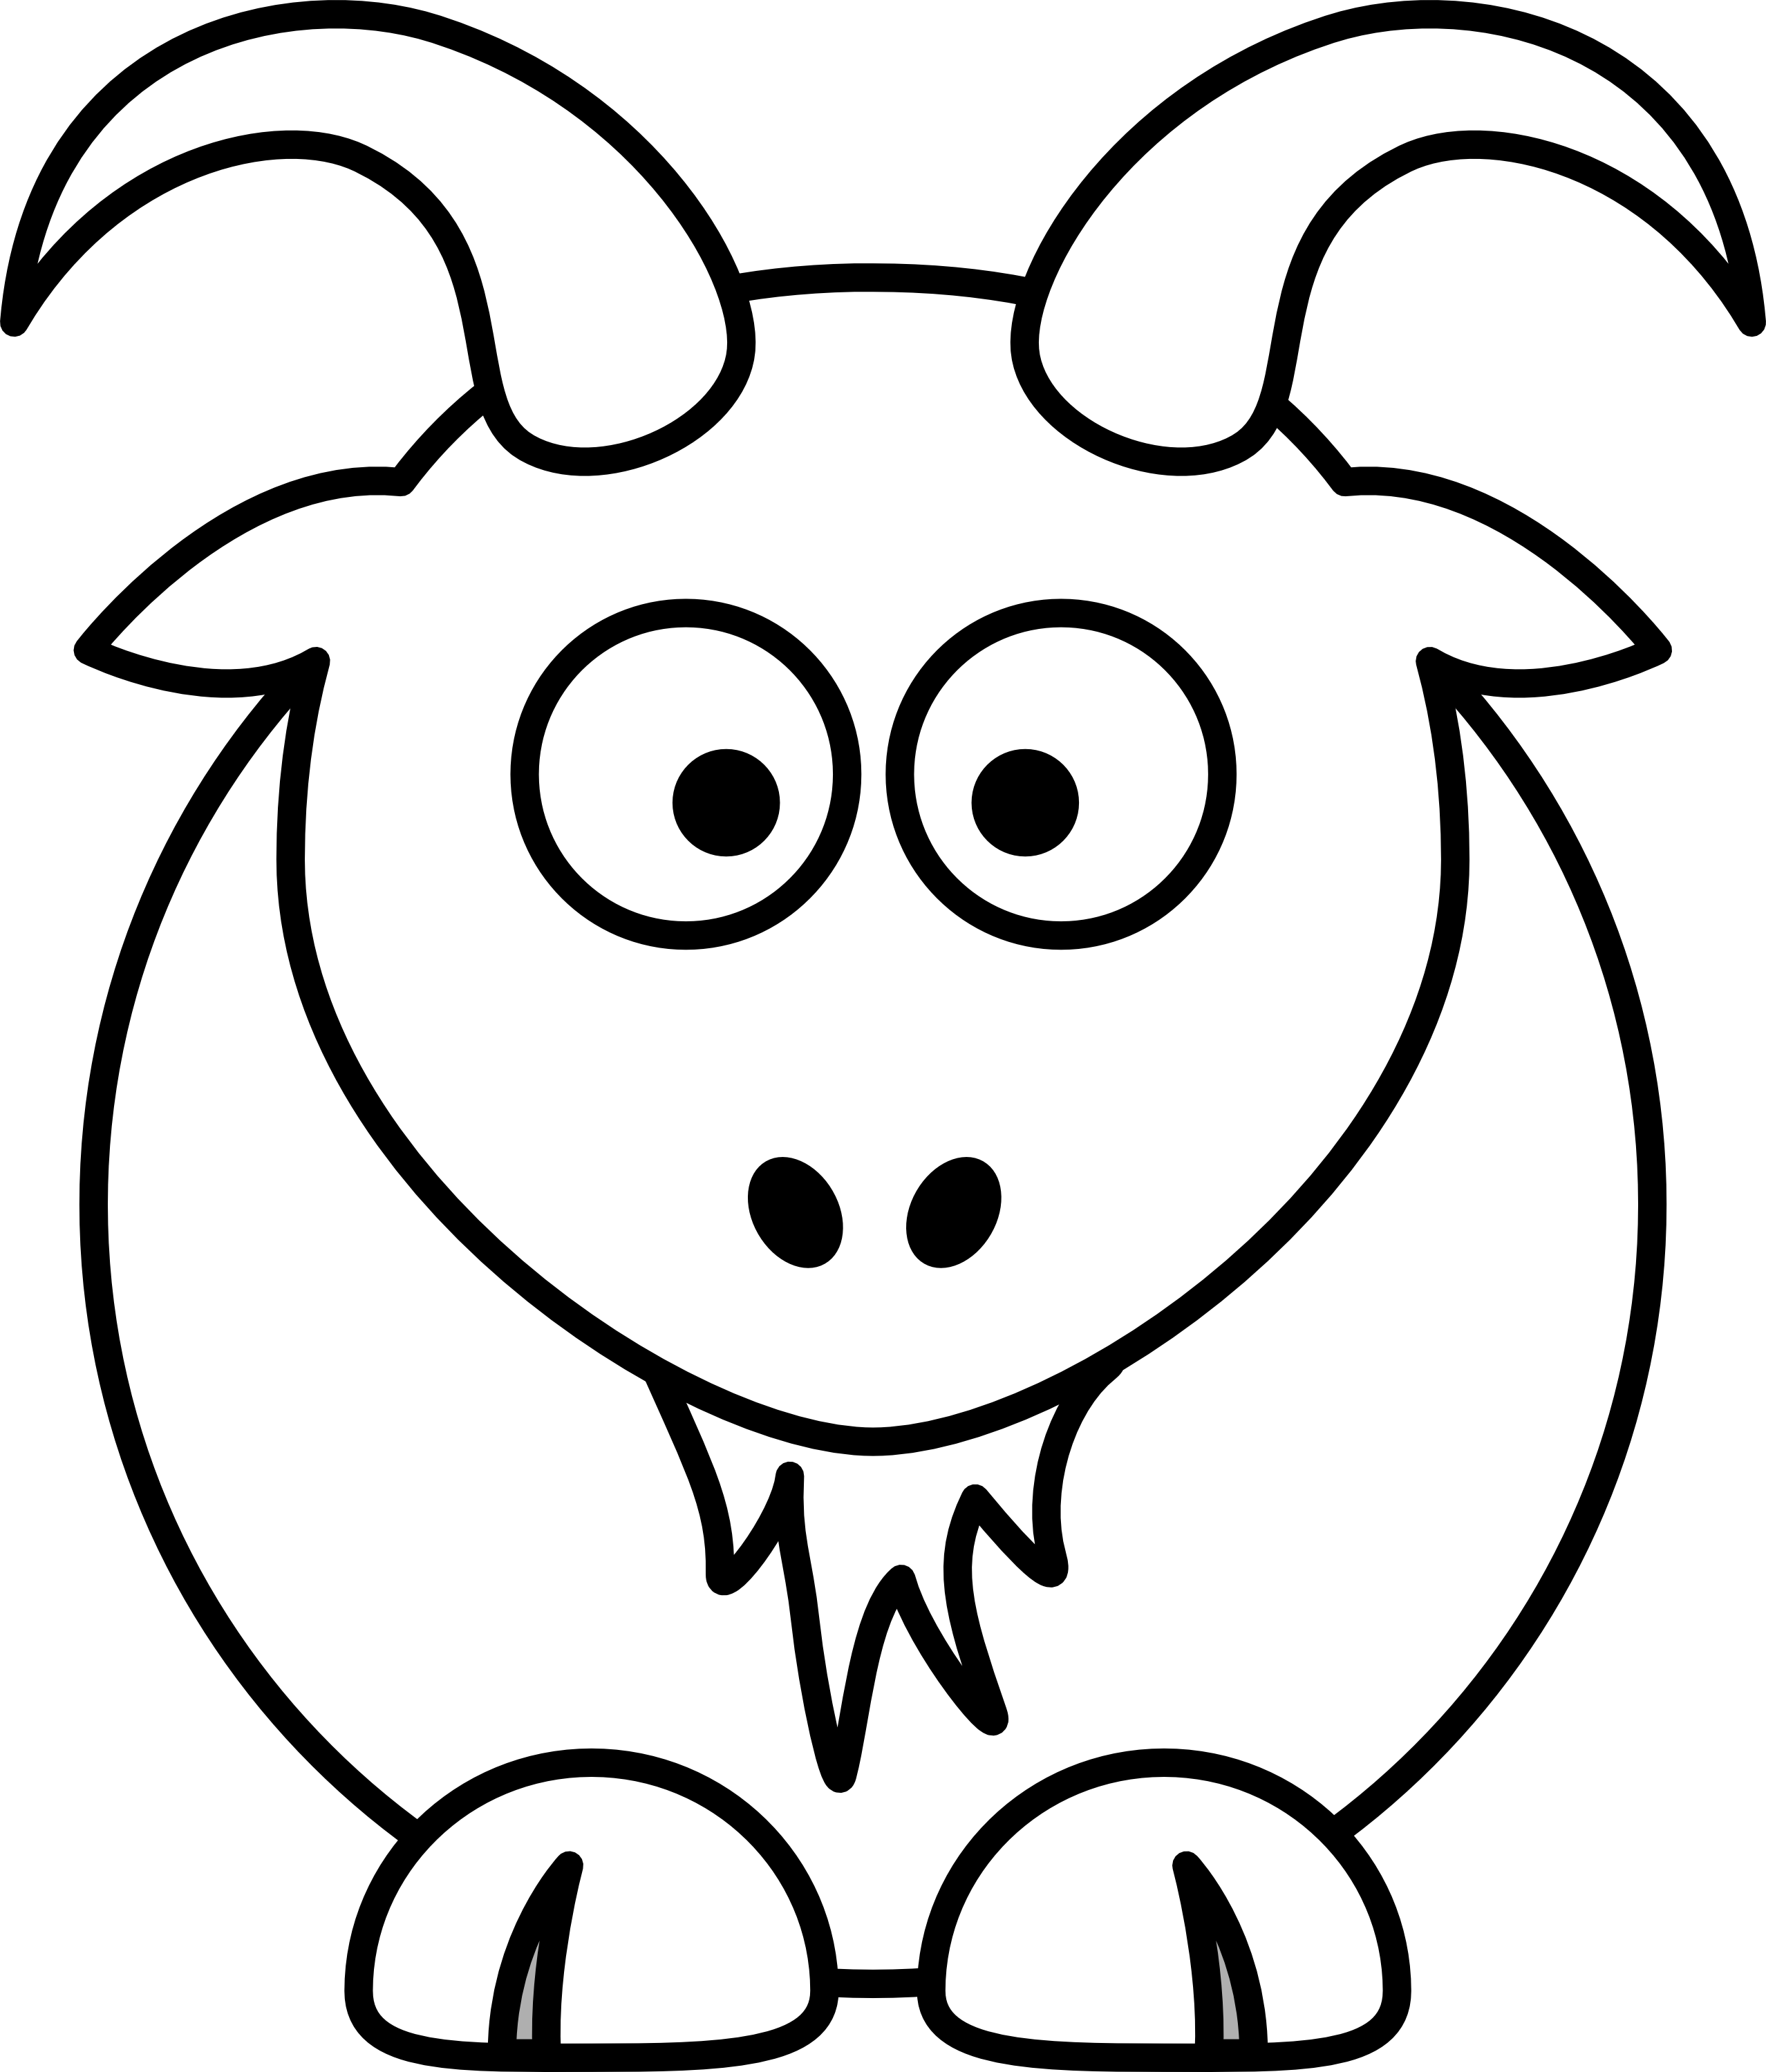 Straight face black and white clipart